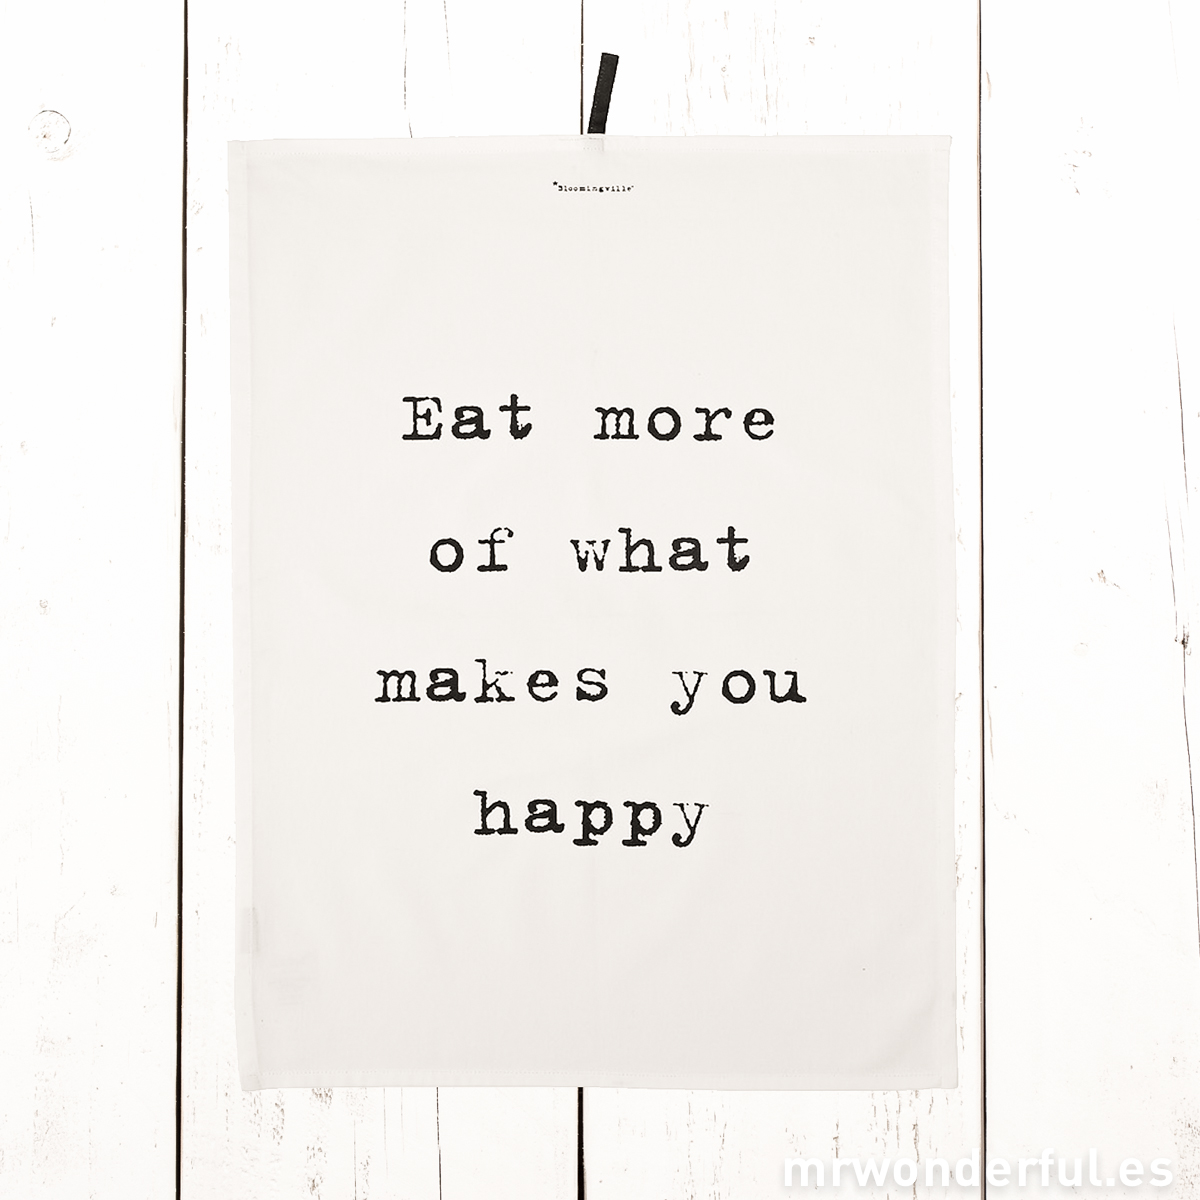 mrwonderful_6200023_2_trapo-cocina_makes-you-happy-1